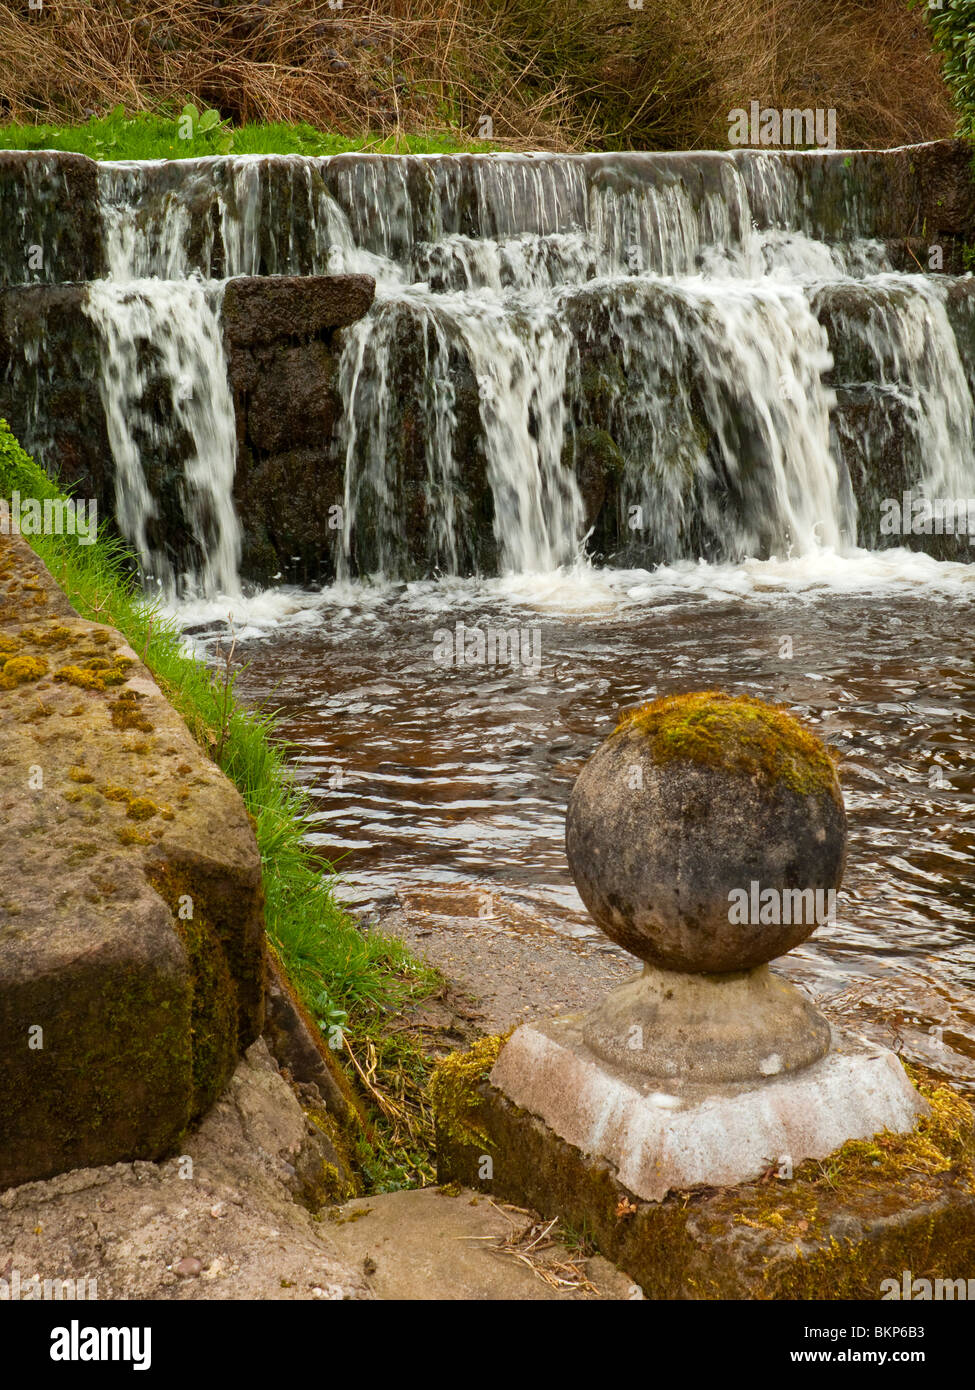 Weir on the River Churnet in the village of Upper Hulme near Leek in the Peak District National Park Staffordshire - Stock Image